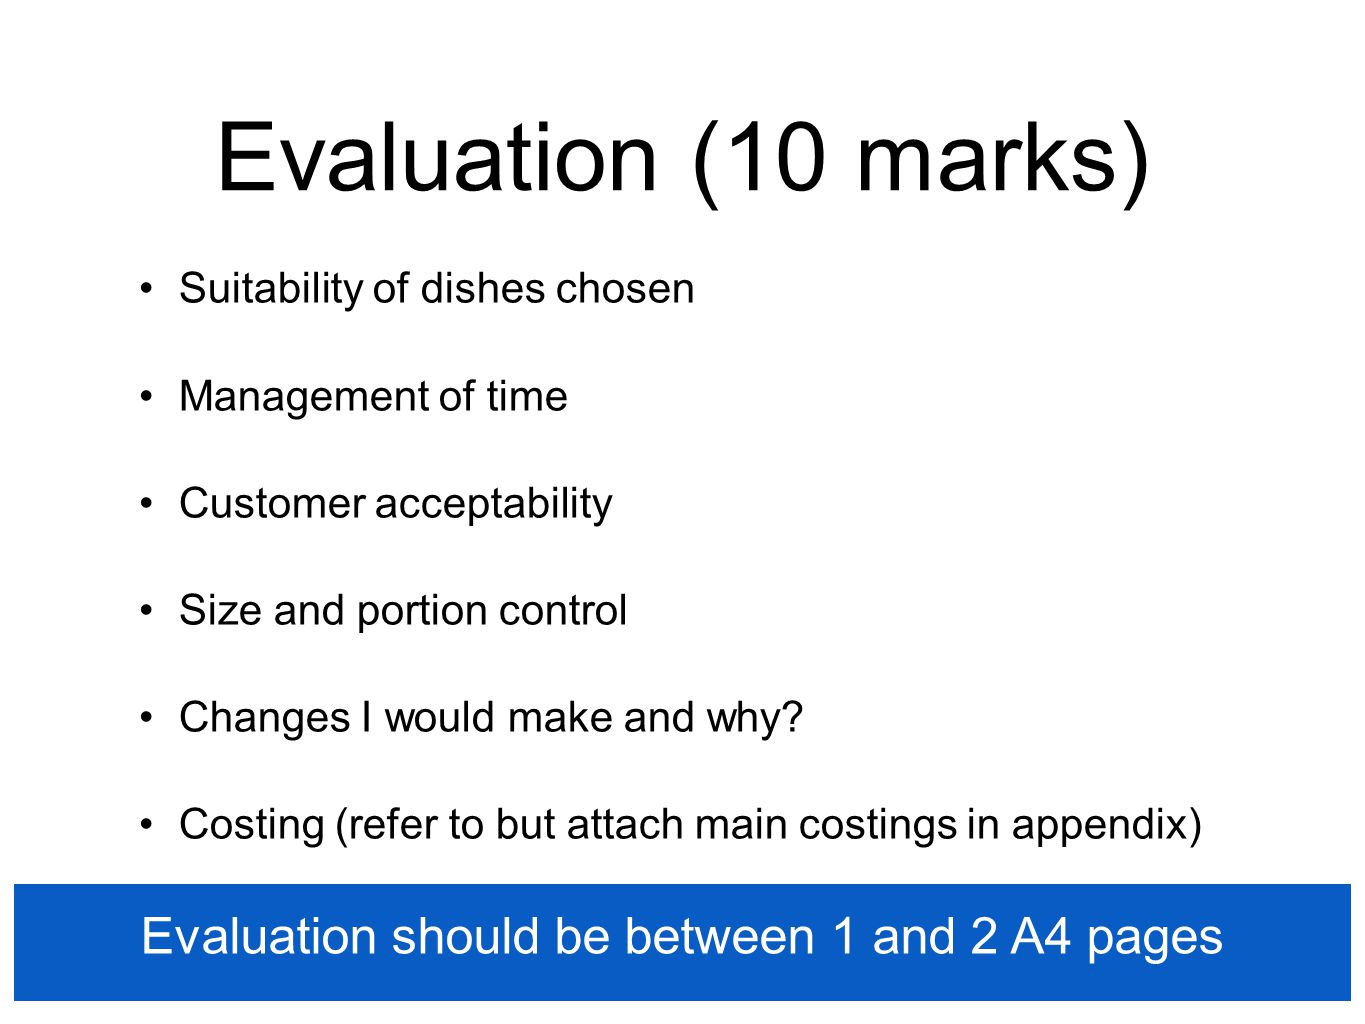 Evaluation should be between 1 and 2 A4 pages